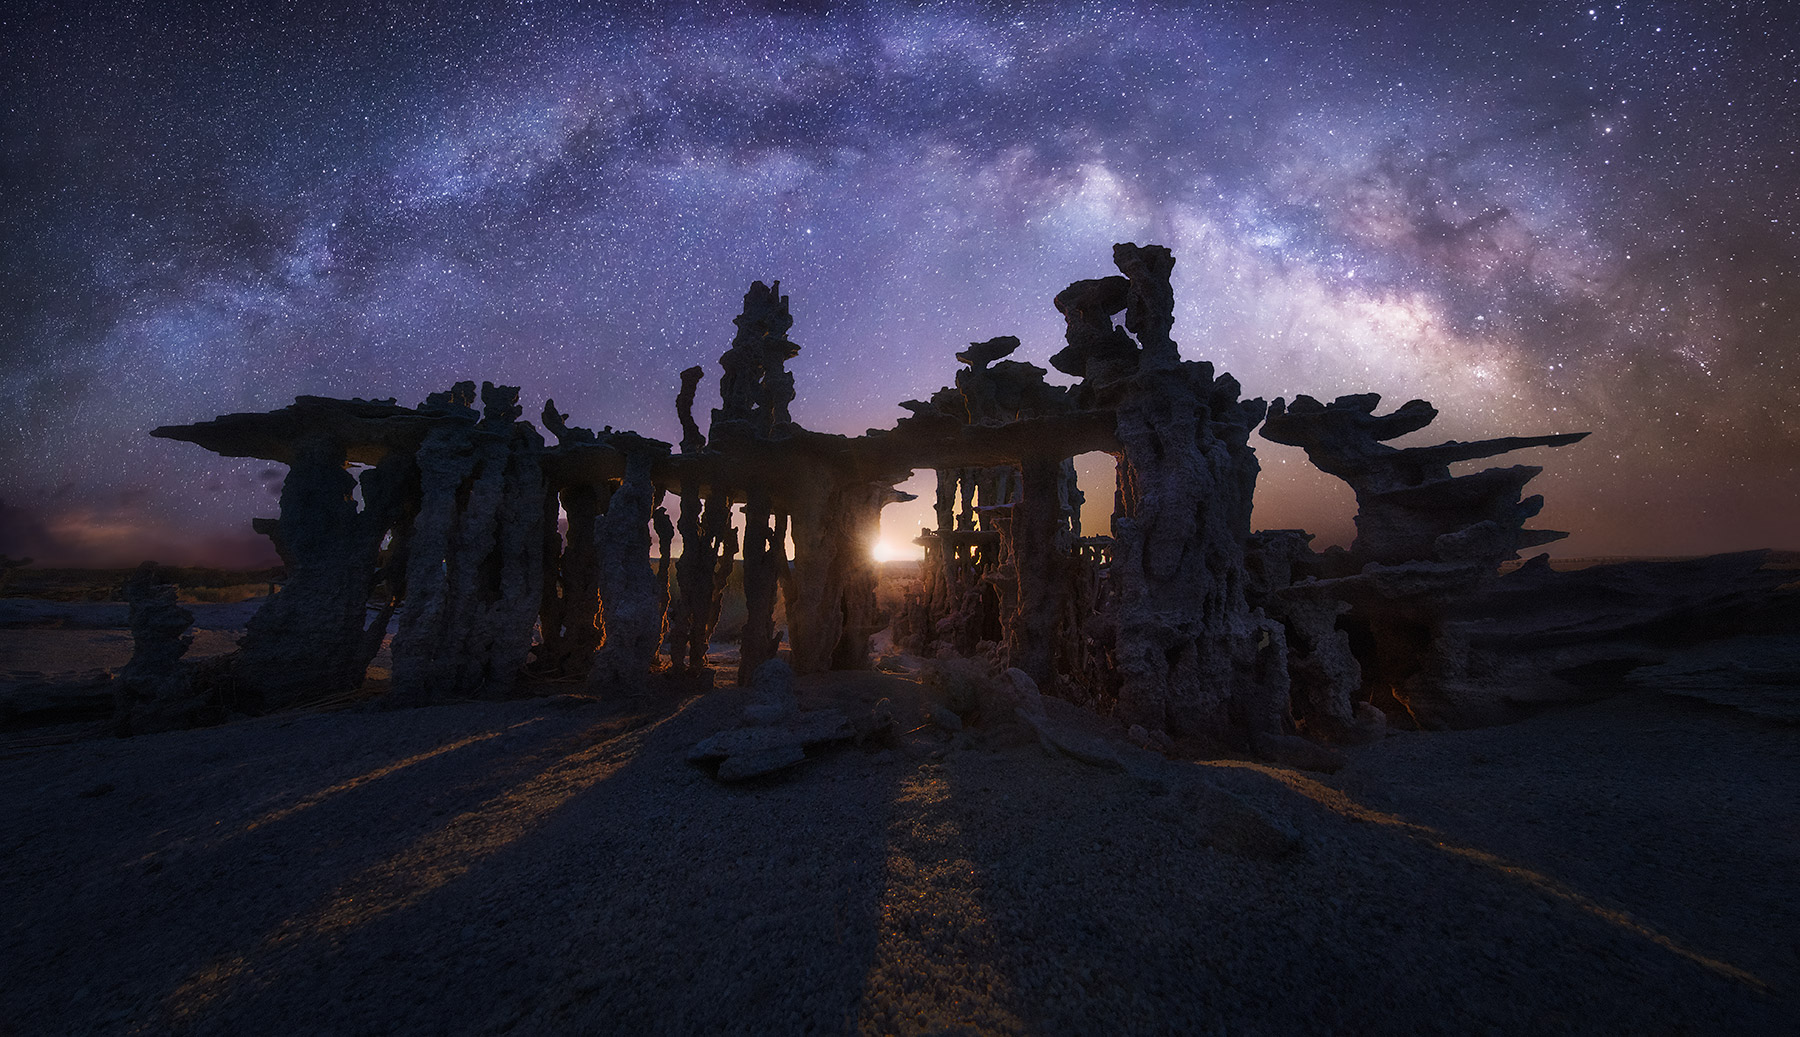 Milky way, moonlight, moon, tufa, mono lake, California, photo